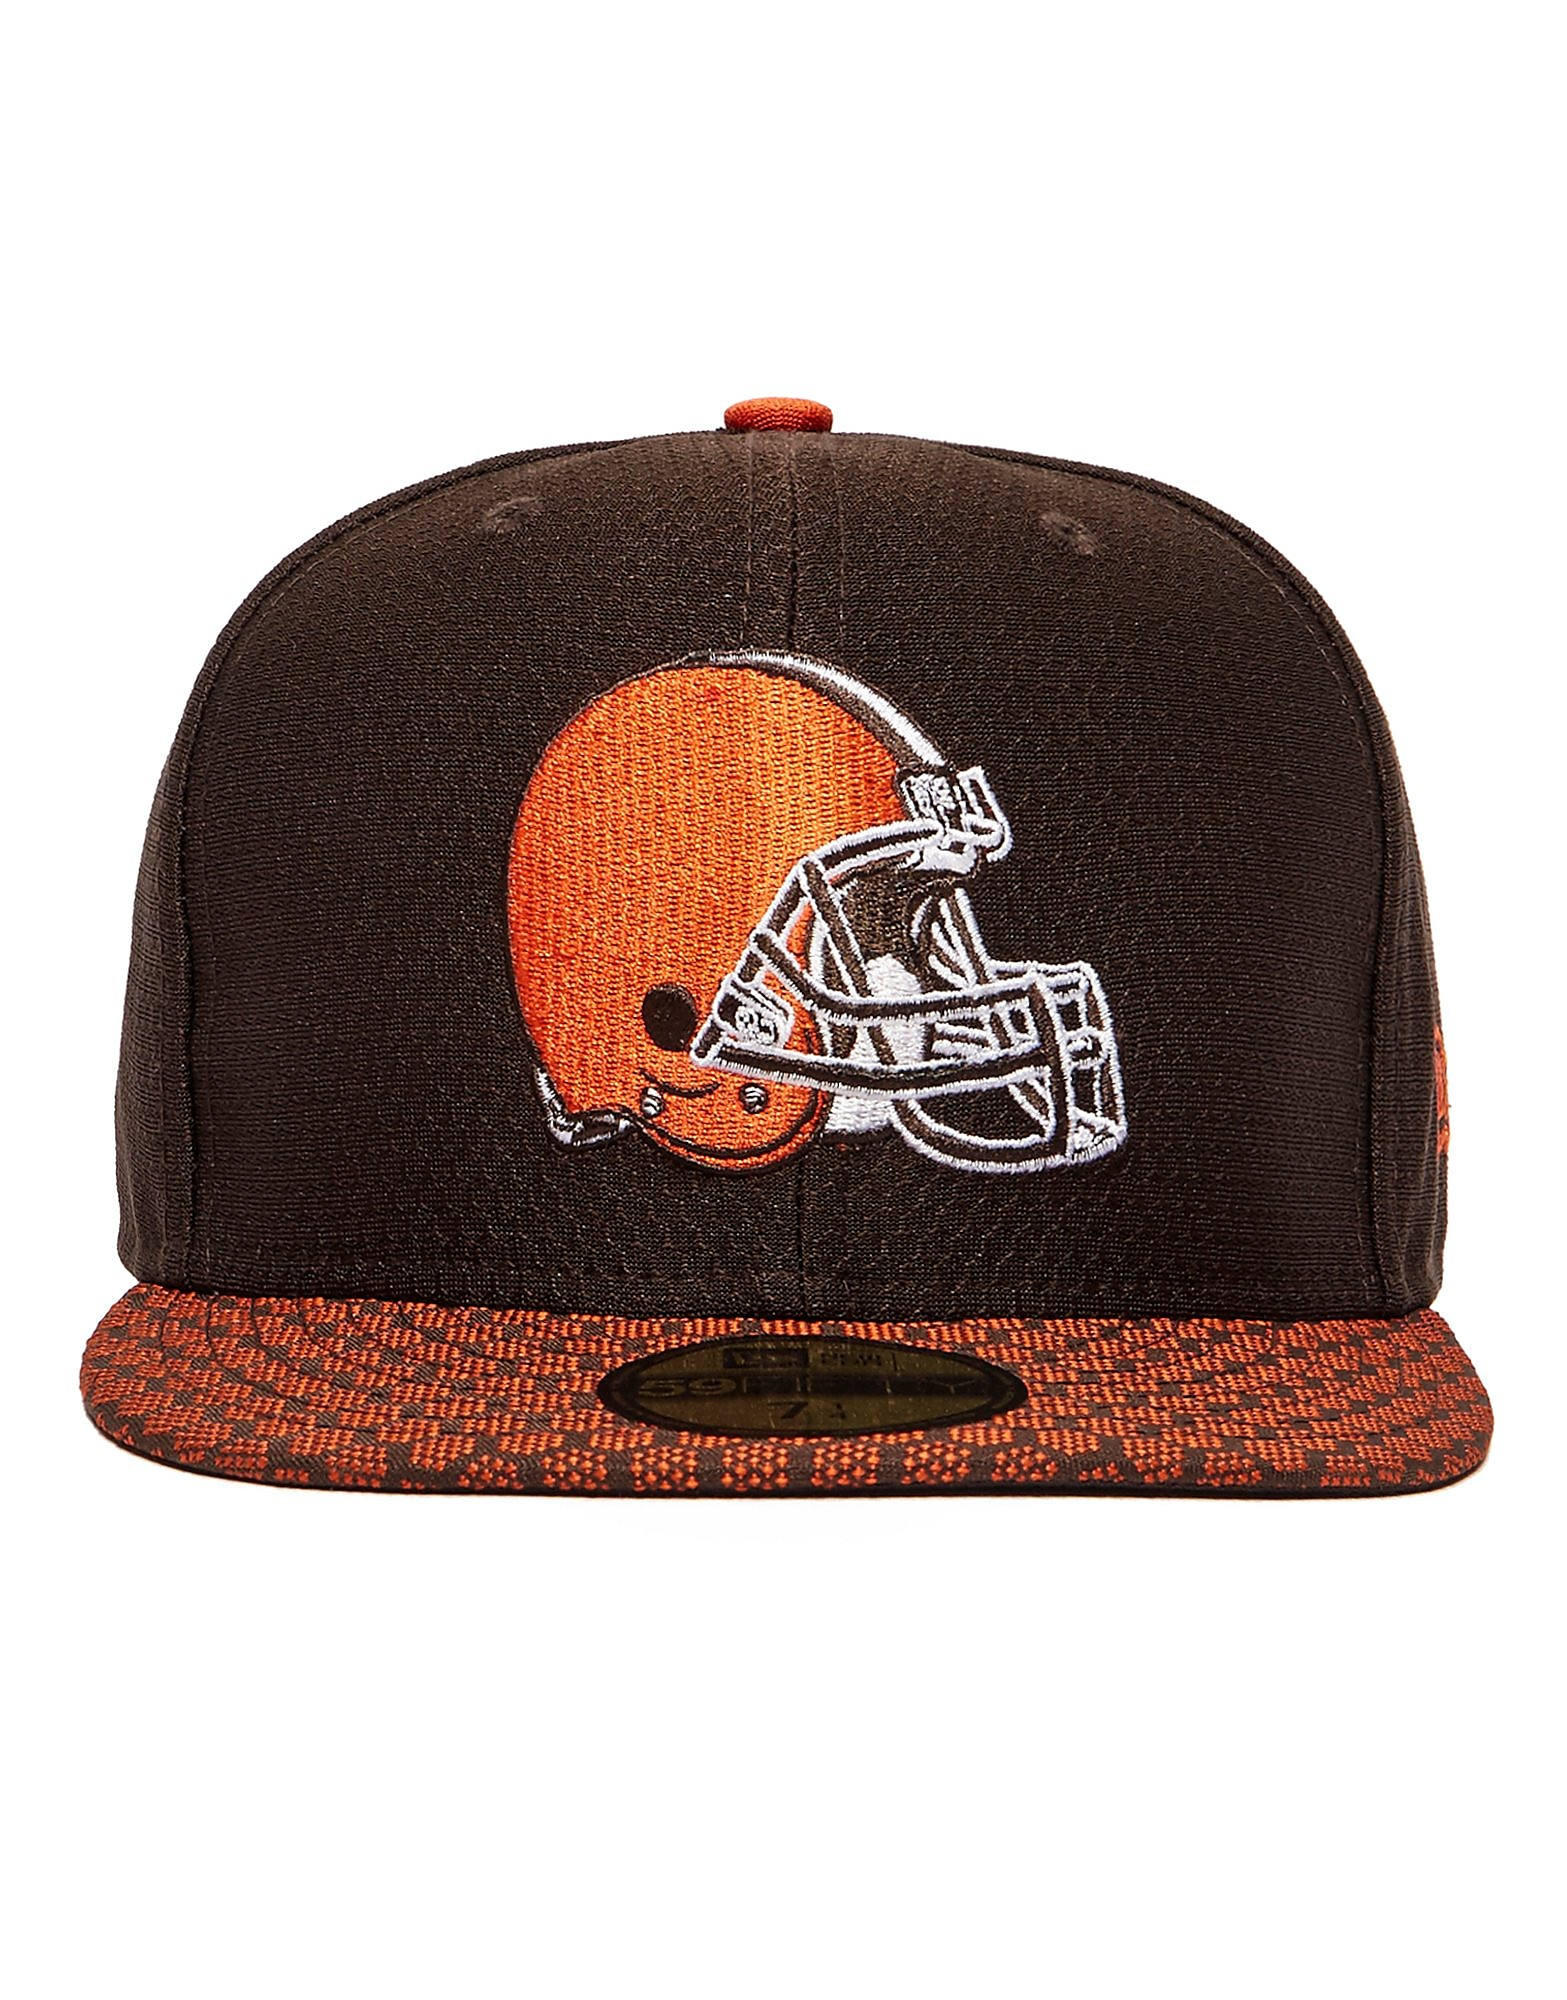 New Era Cleveland Browns 59FIFTY Cap